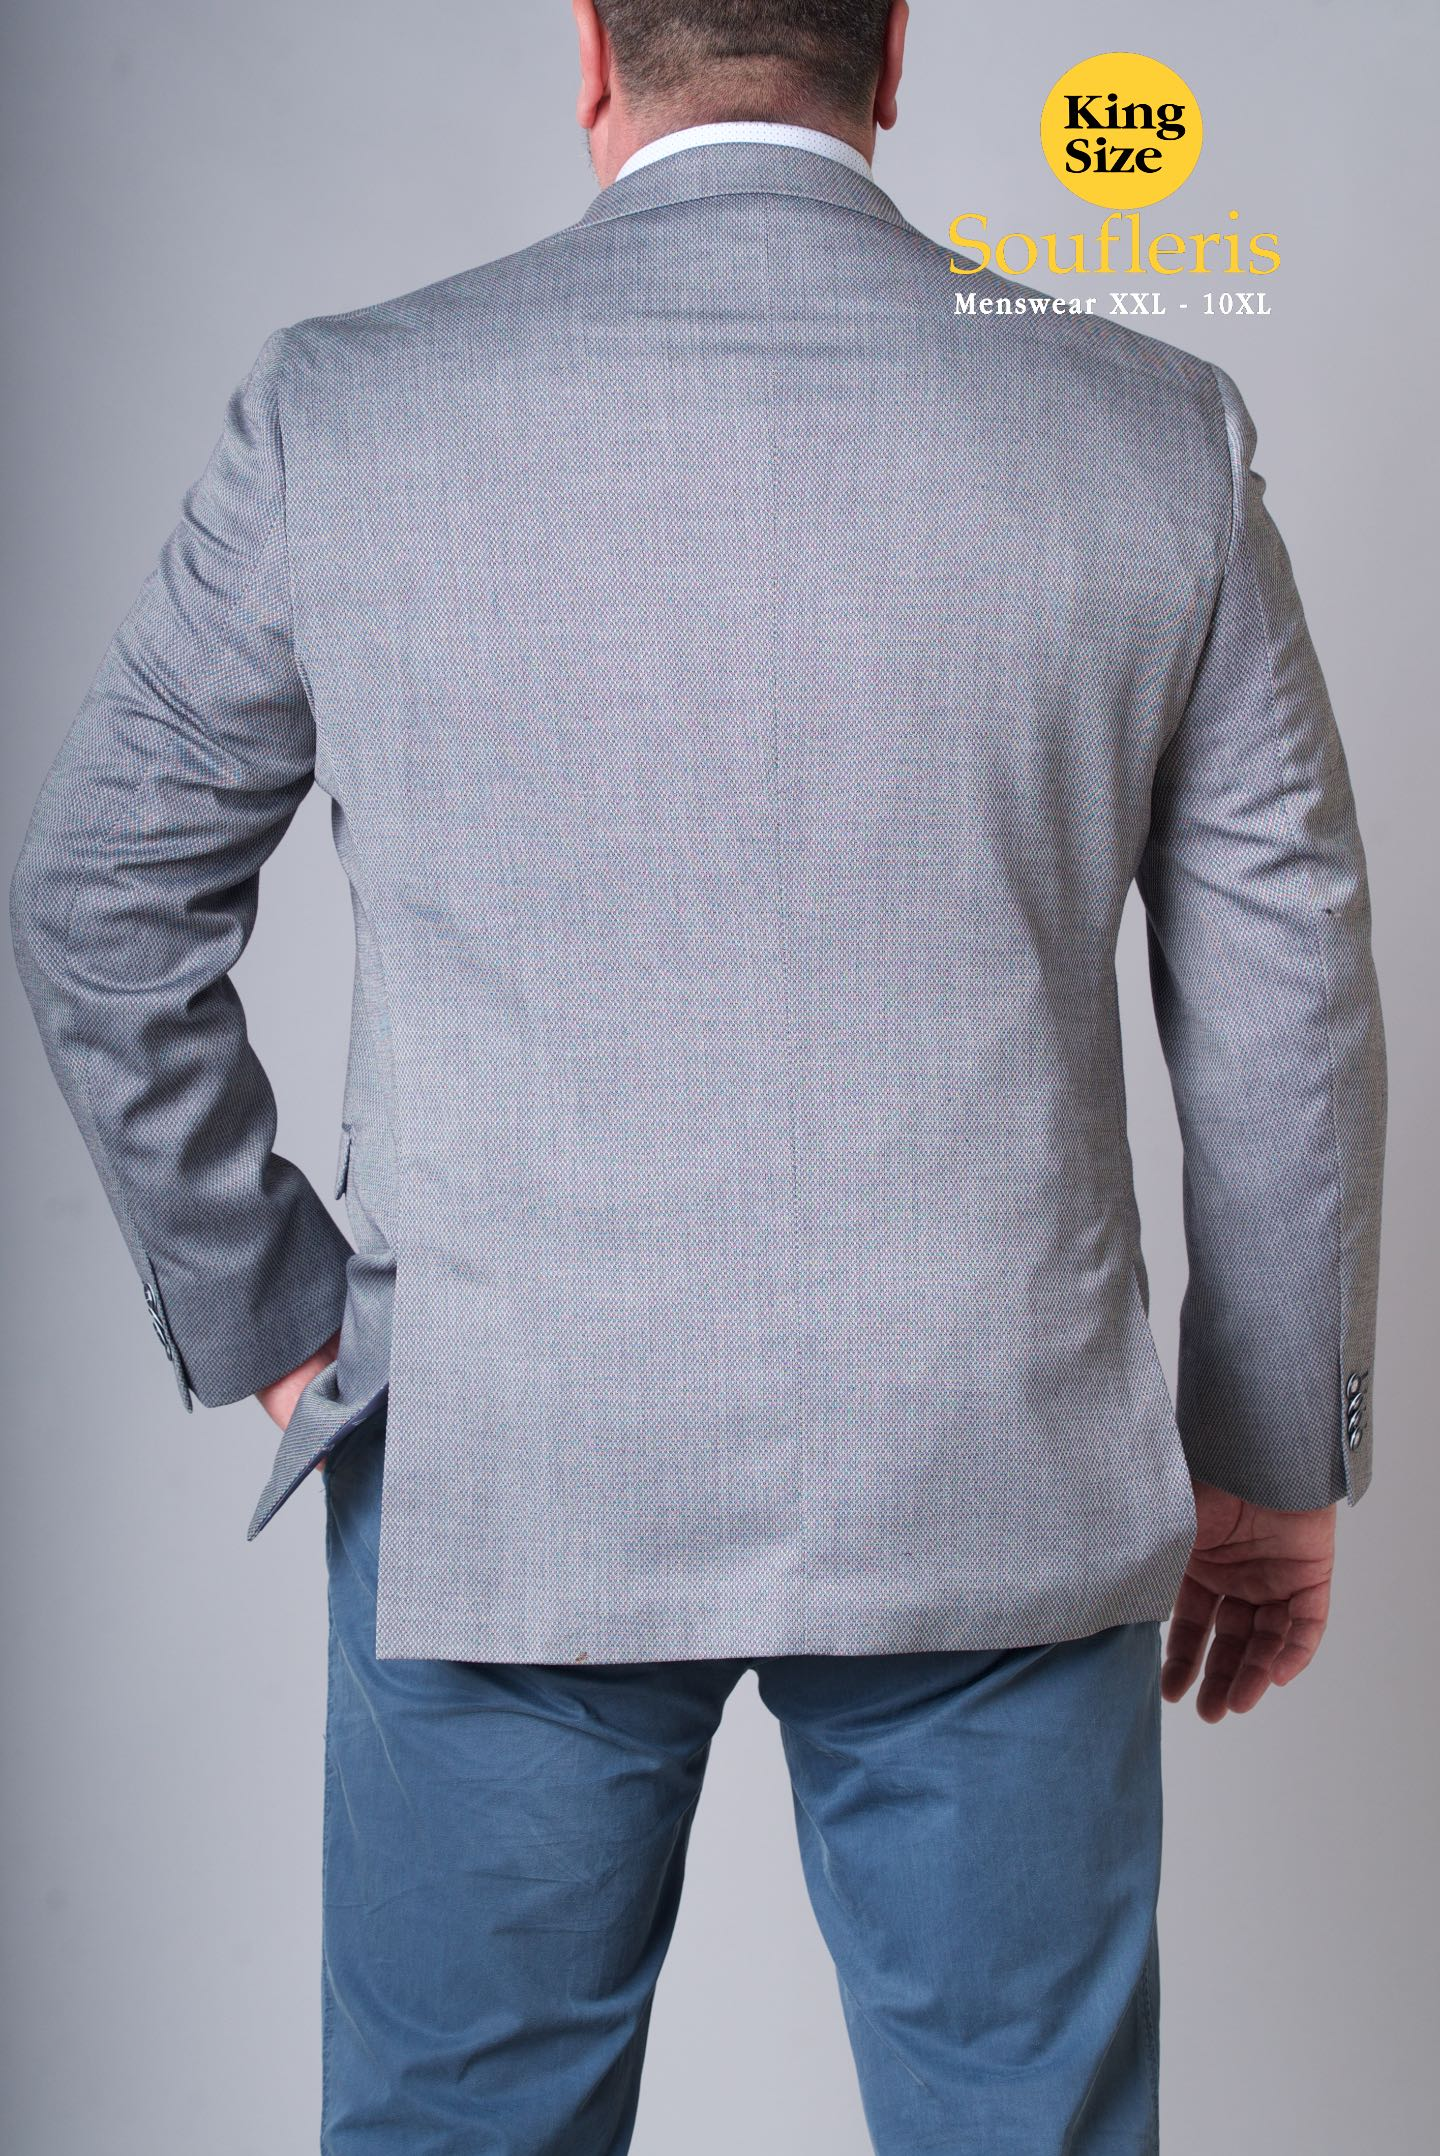 b980d7a8f4a9 ... ΣΑΚΑΚΙ MASTER TAILOR 35% VISCOZE 65% POLY - 00000764 - ΓΚΡΙ ...